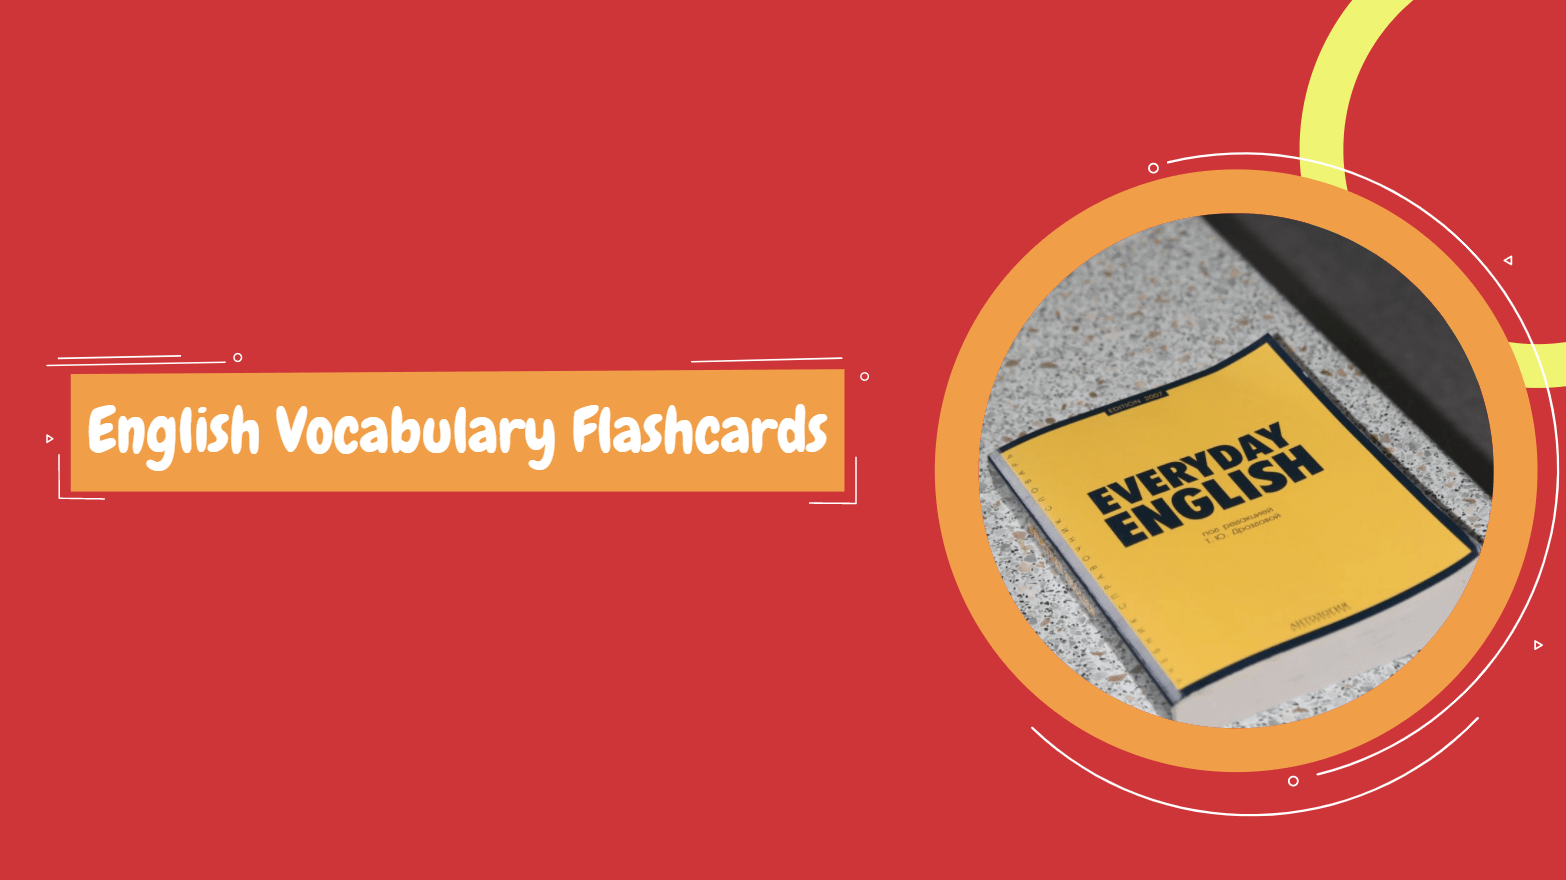 A flashcard sample deck for highschool and college students or simply for any educational professional to create good looking flashcards for class material. Flashcards are great way to improve memory and improve the learning experience.